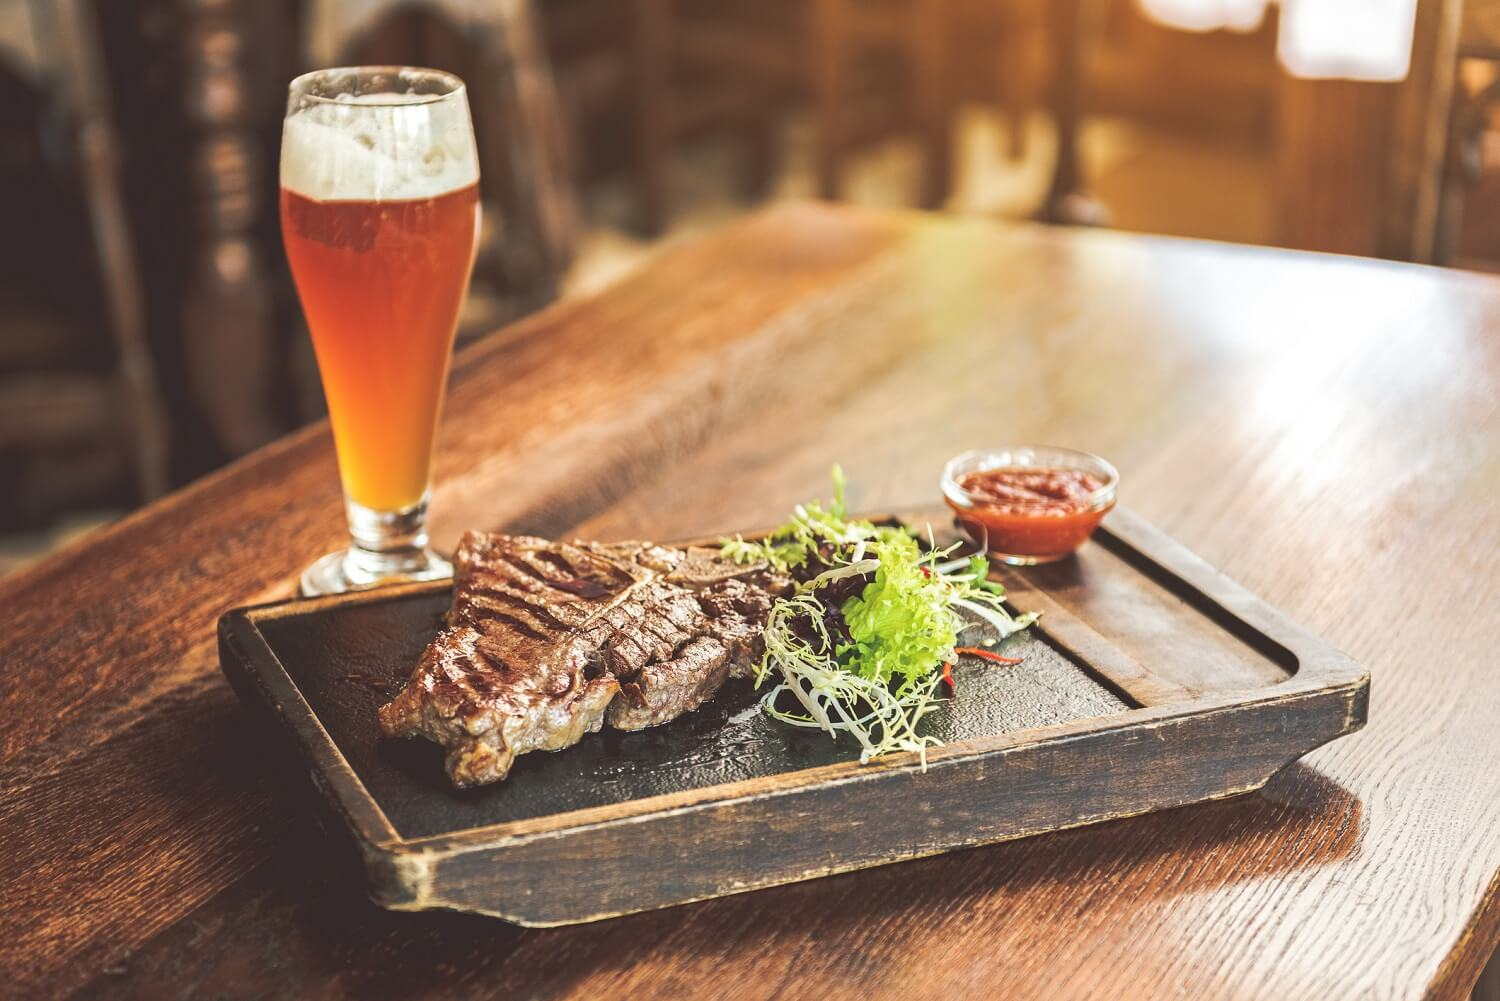 steak dish and beer